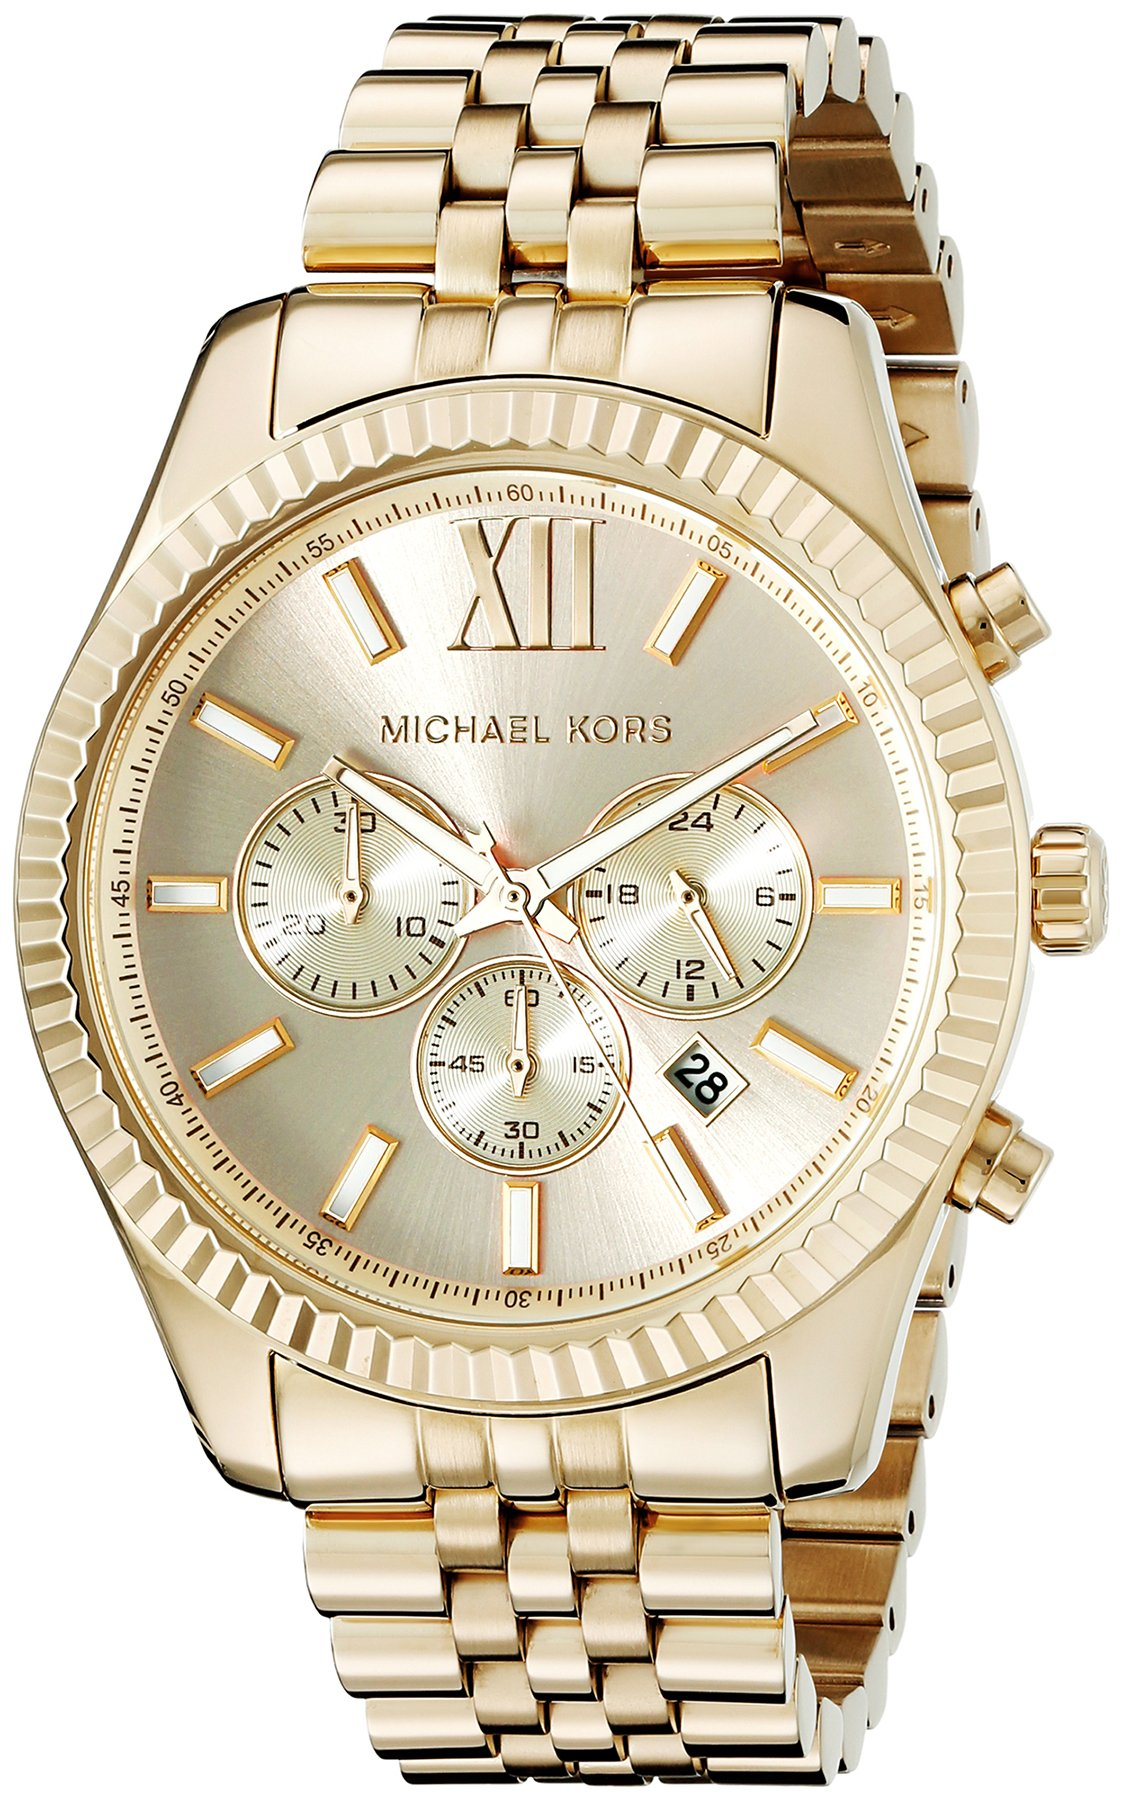 Michael Kors Lexington Gold-Tone Stainless Steel Watch MK8281 product image